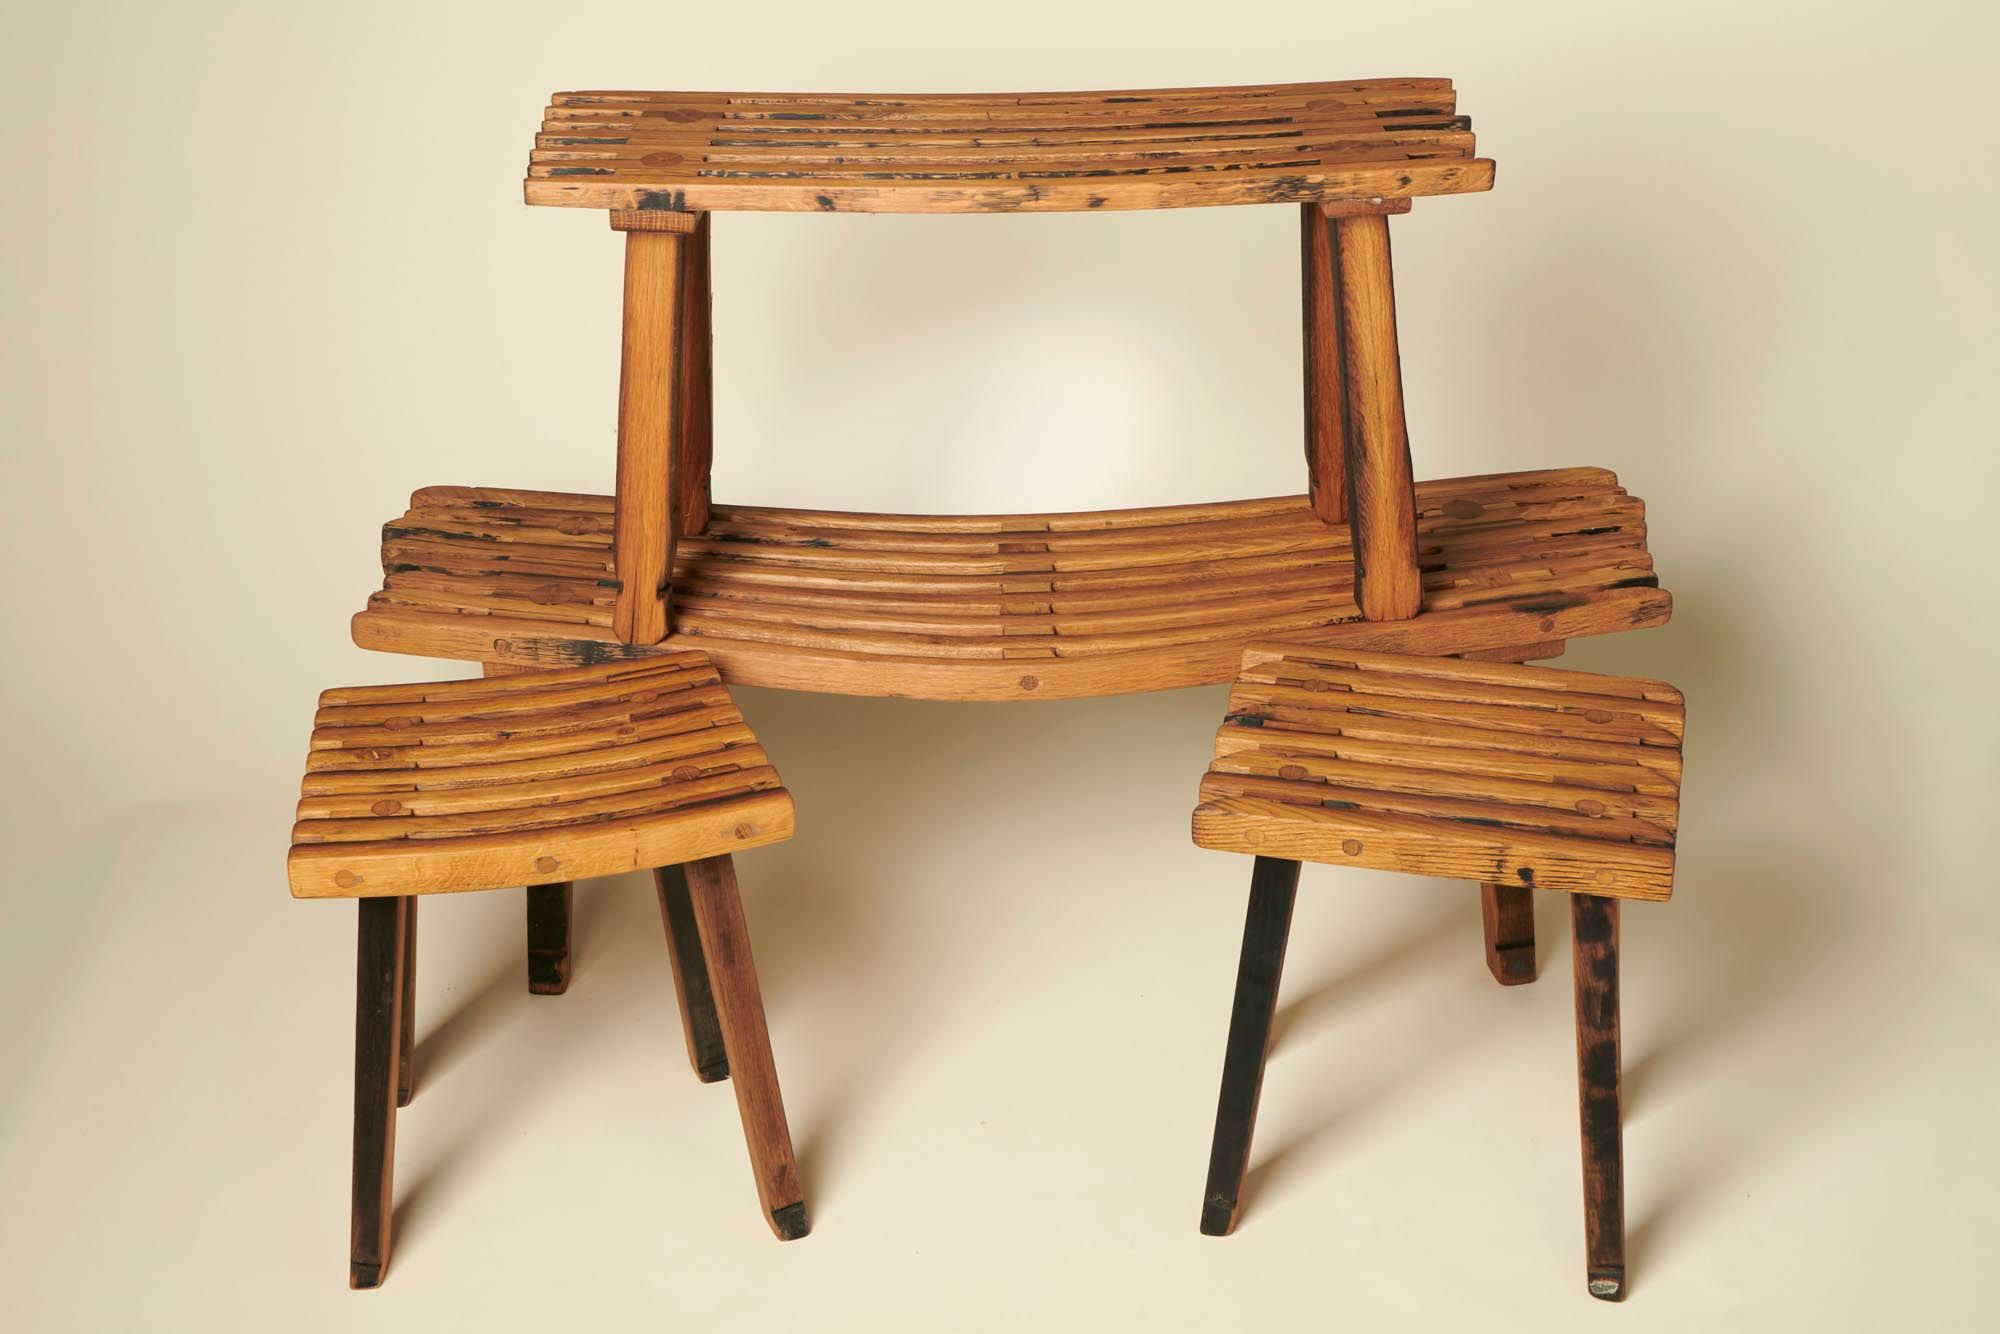 Stave benches